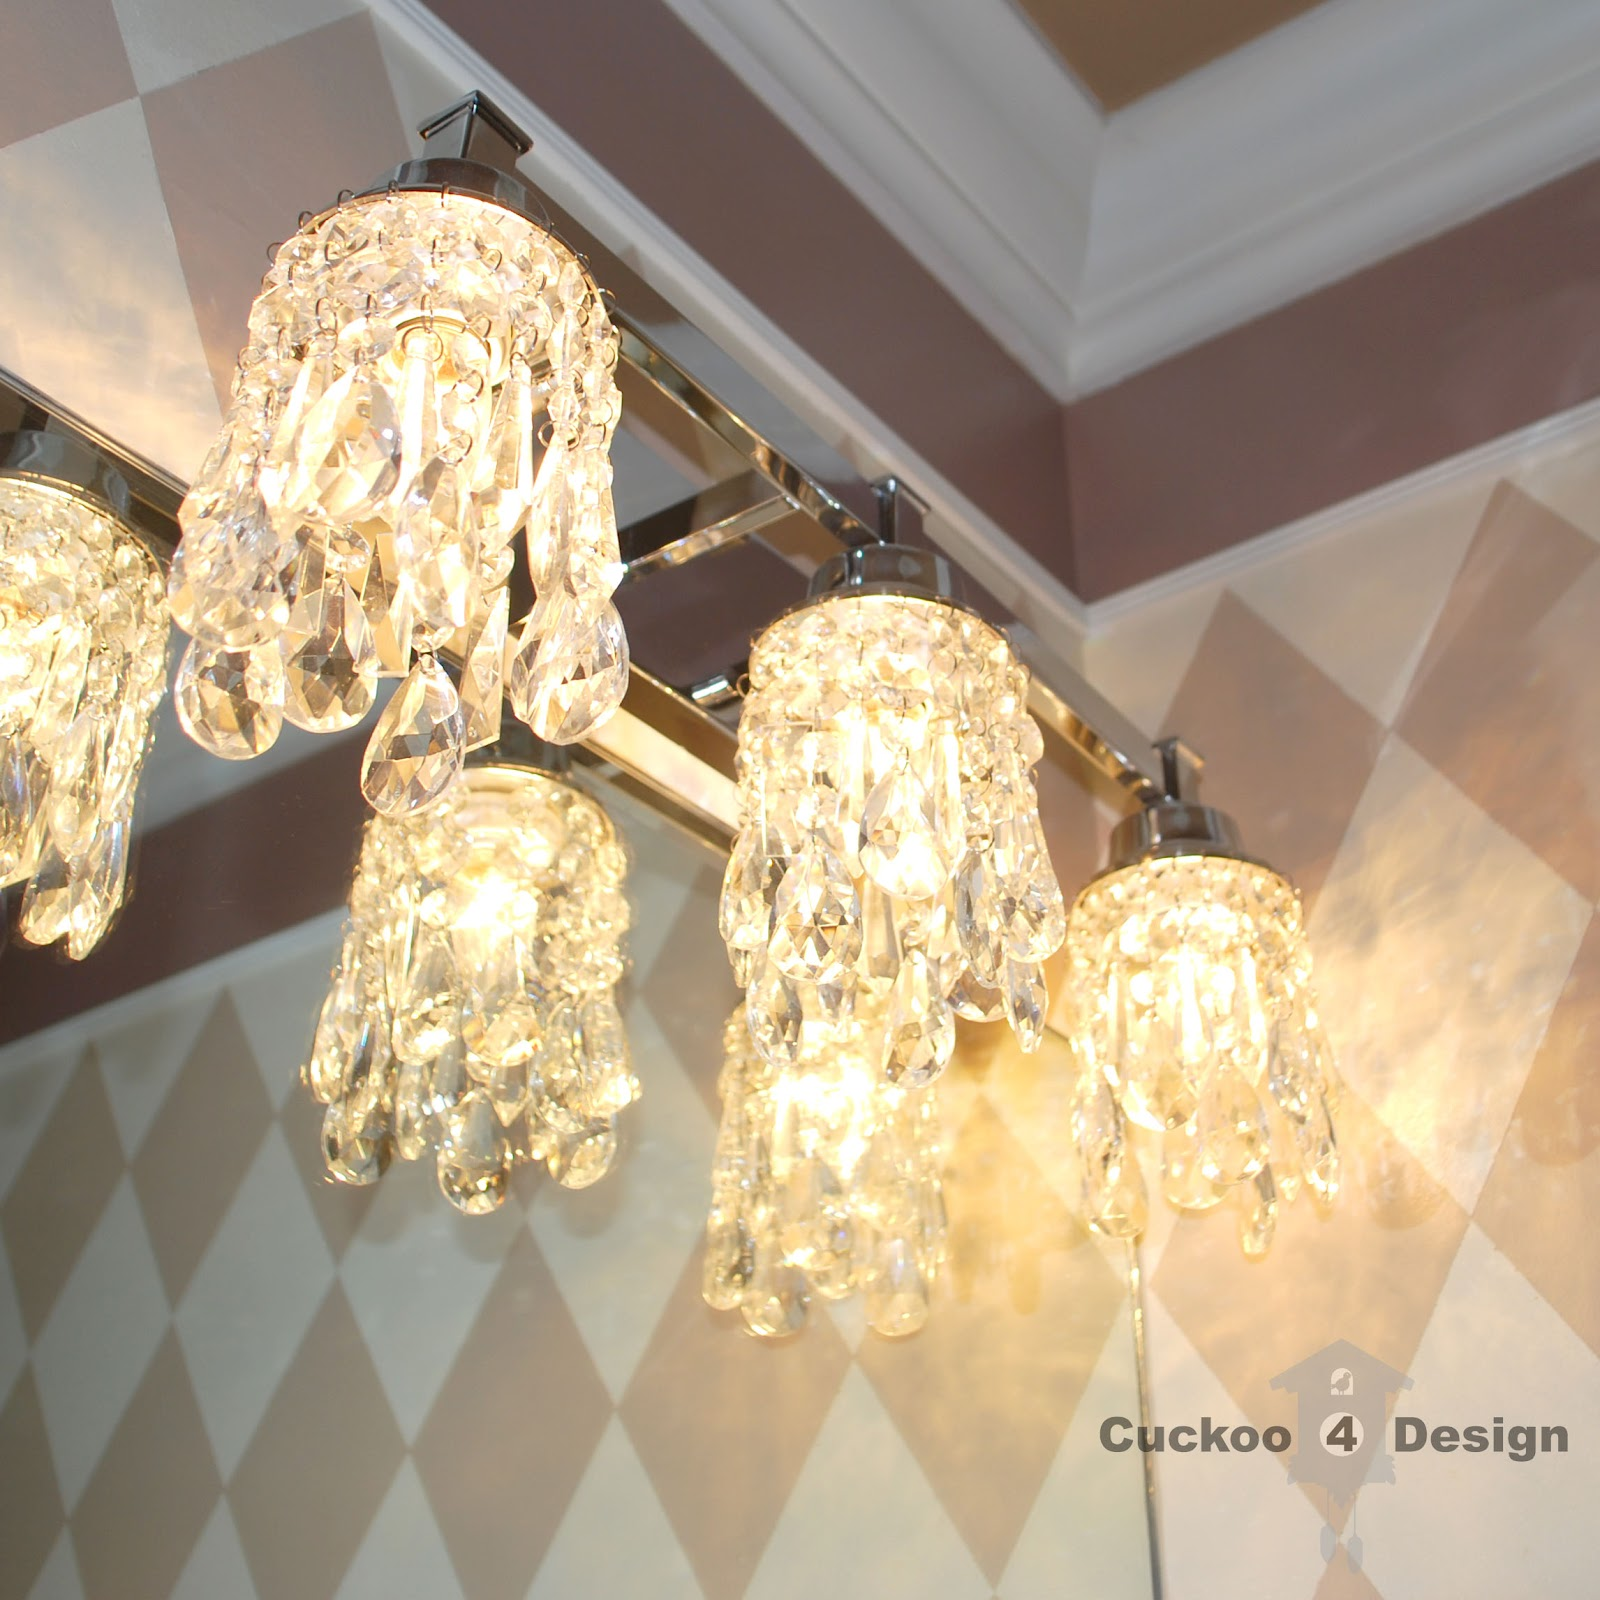 Vanity Light Shade Diy : DIY crystal vanity shades - Cuckoo4Design